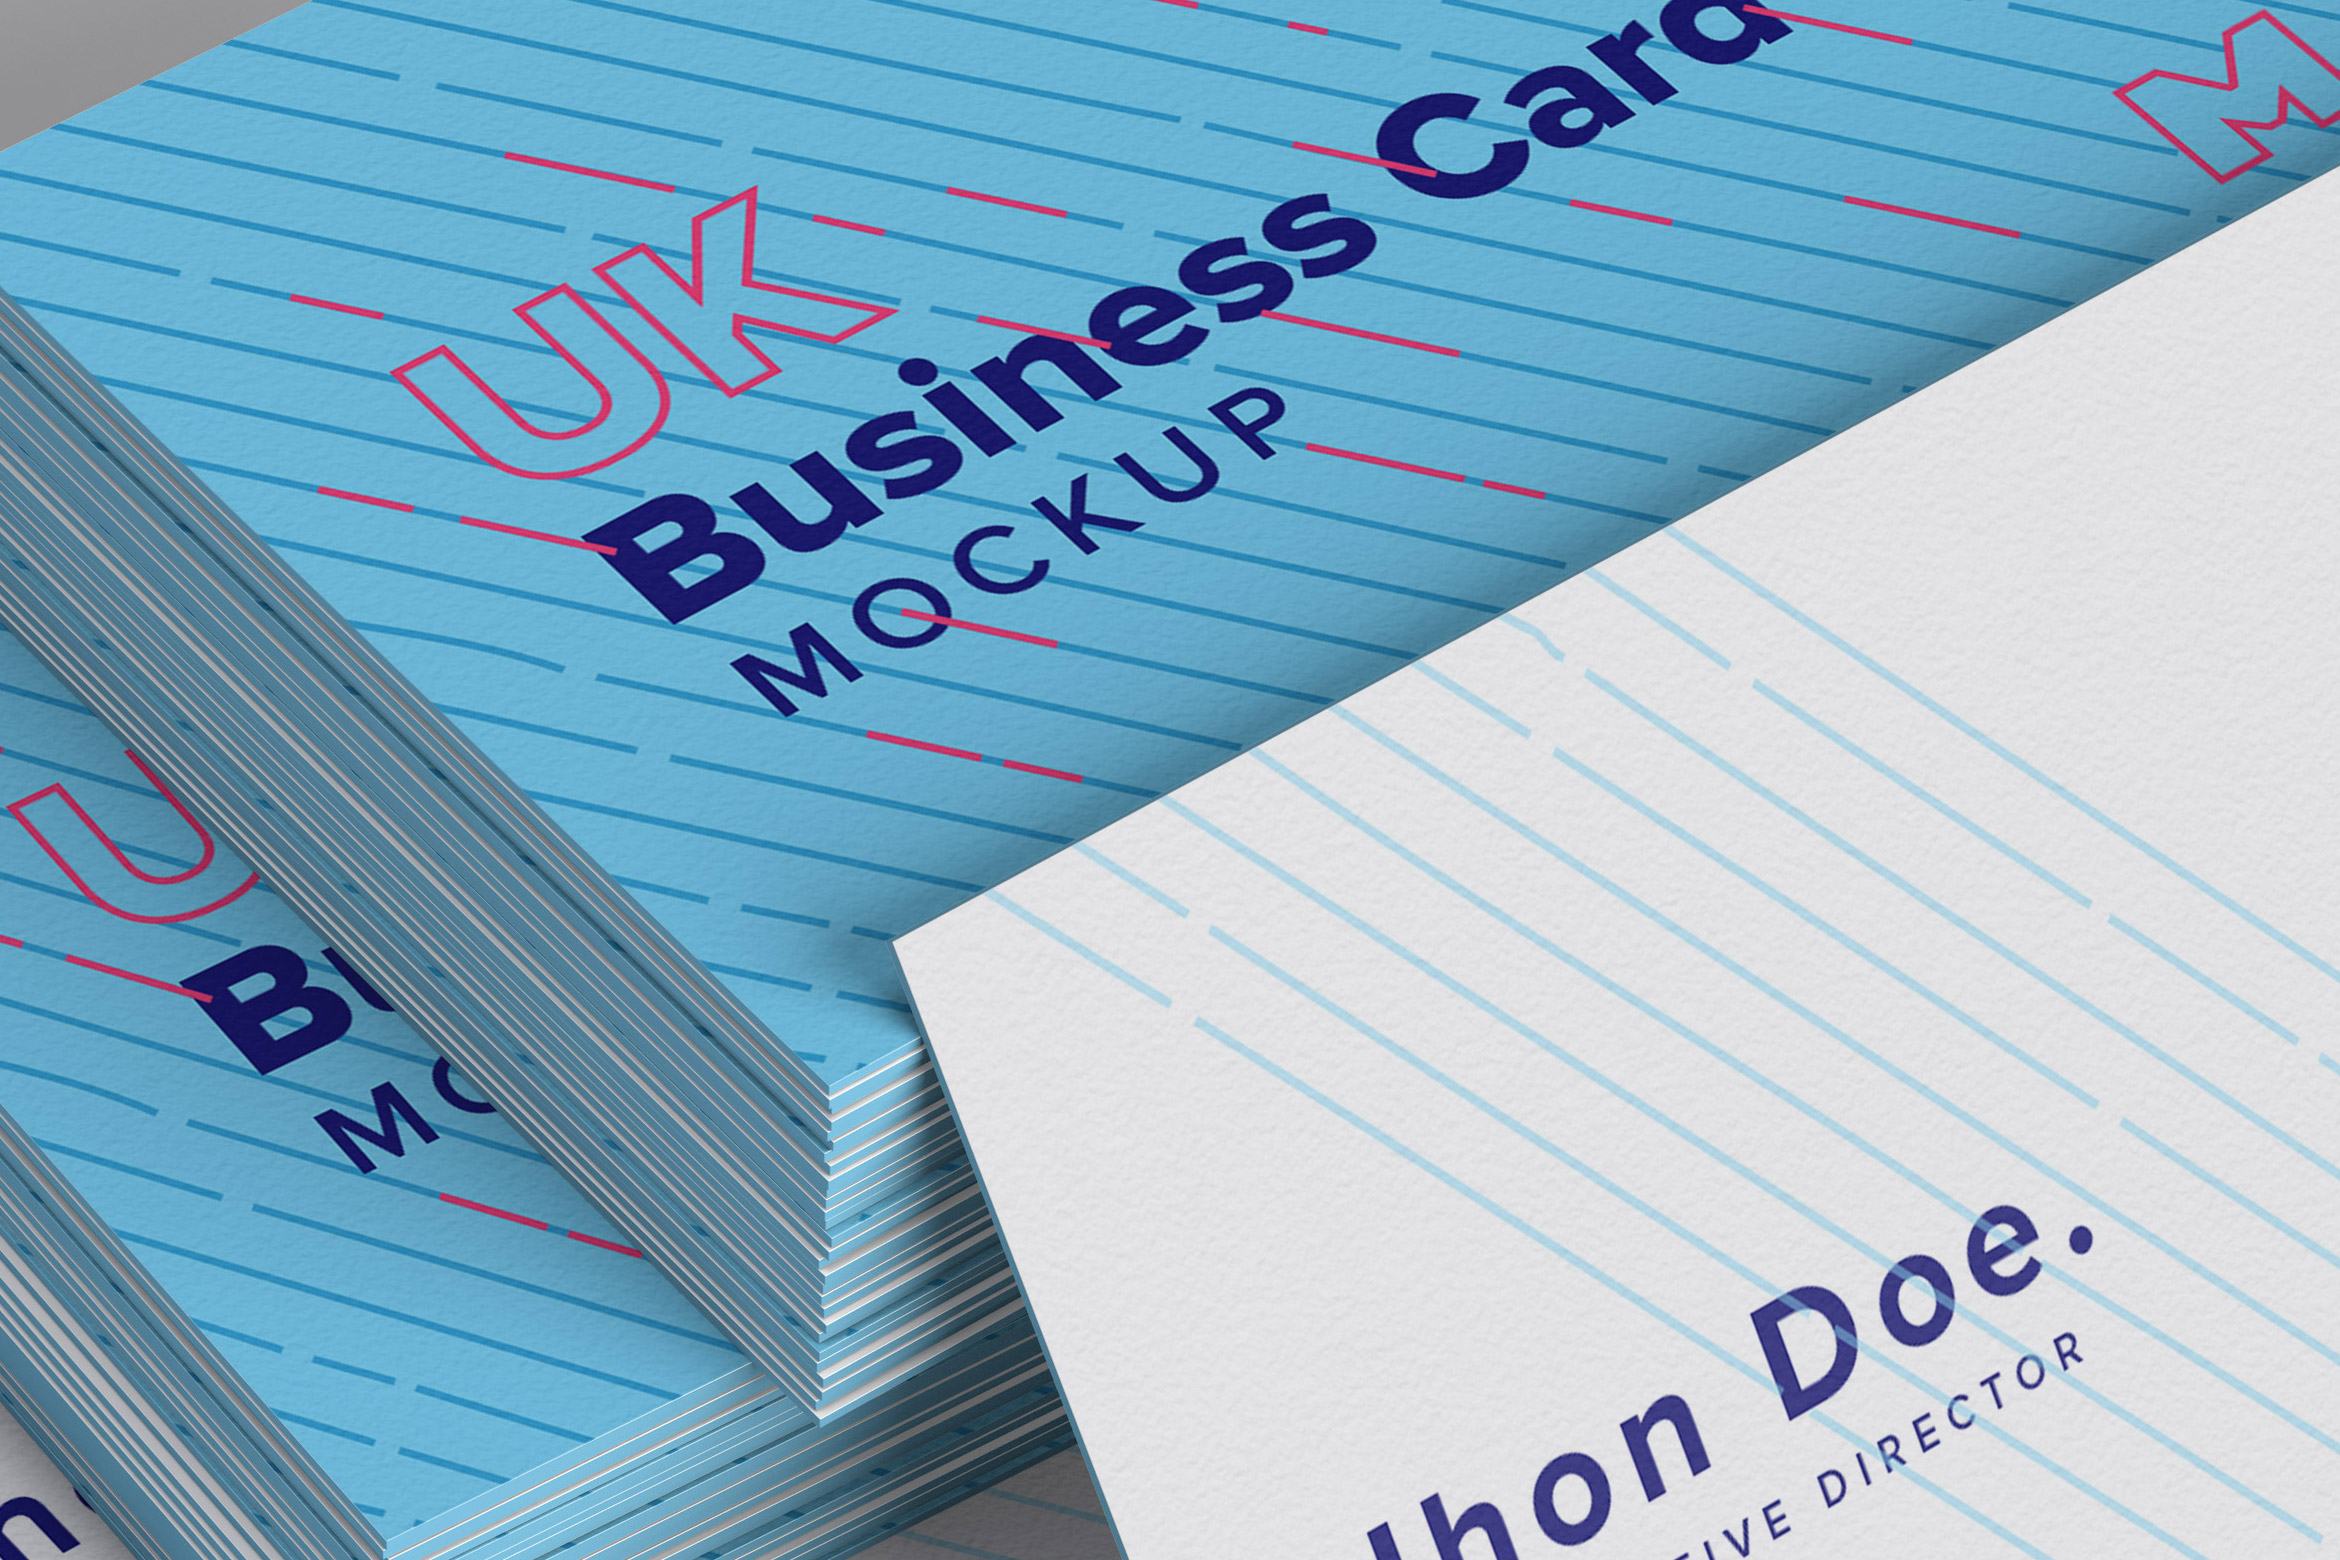 uk-business-cards-mockup-08-02.jpg